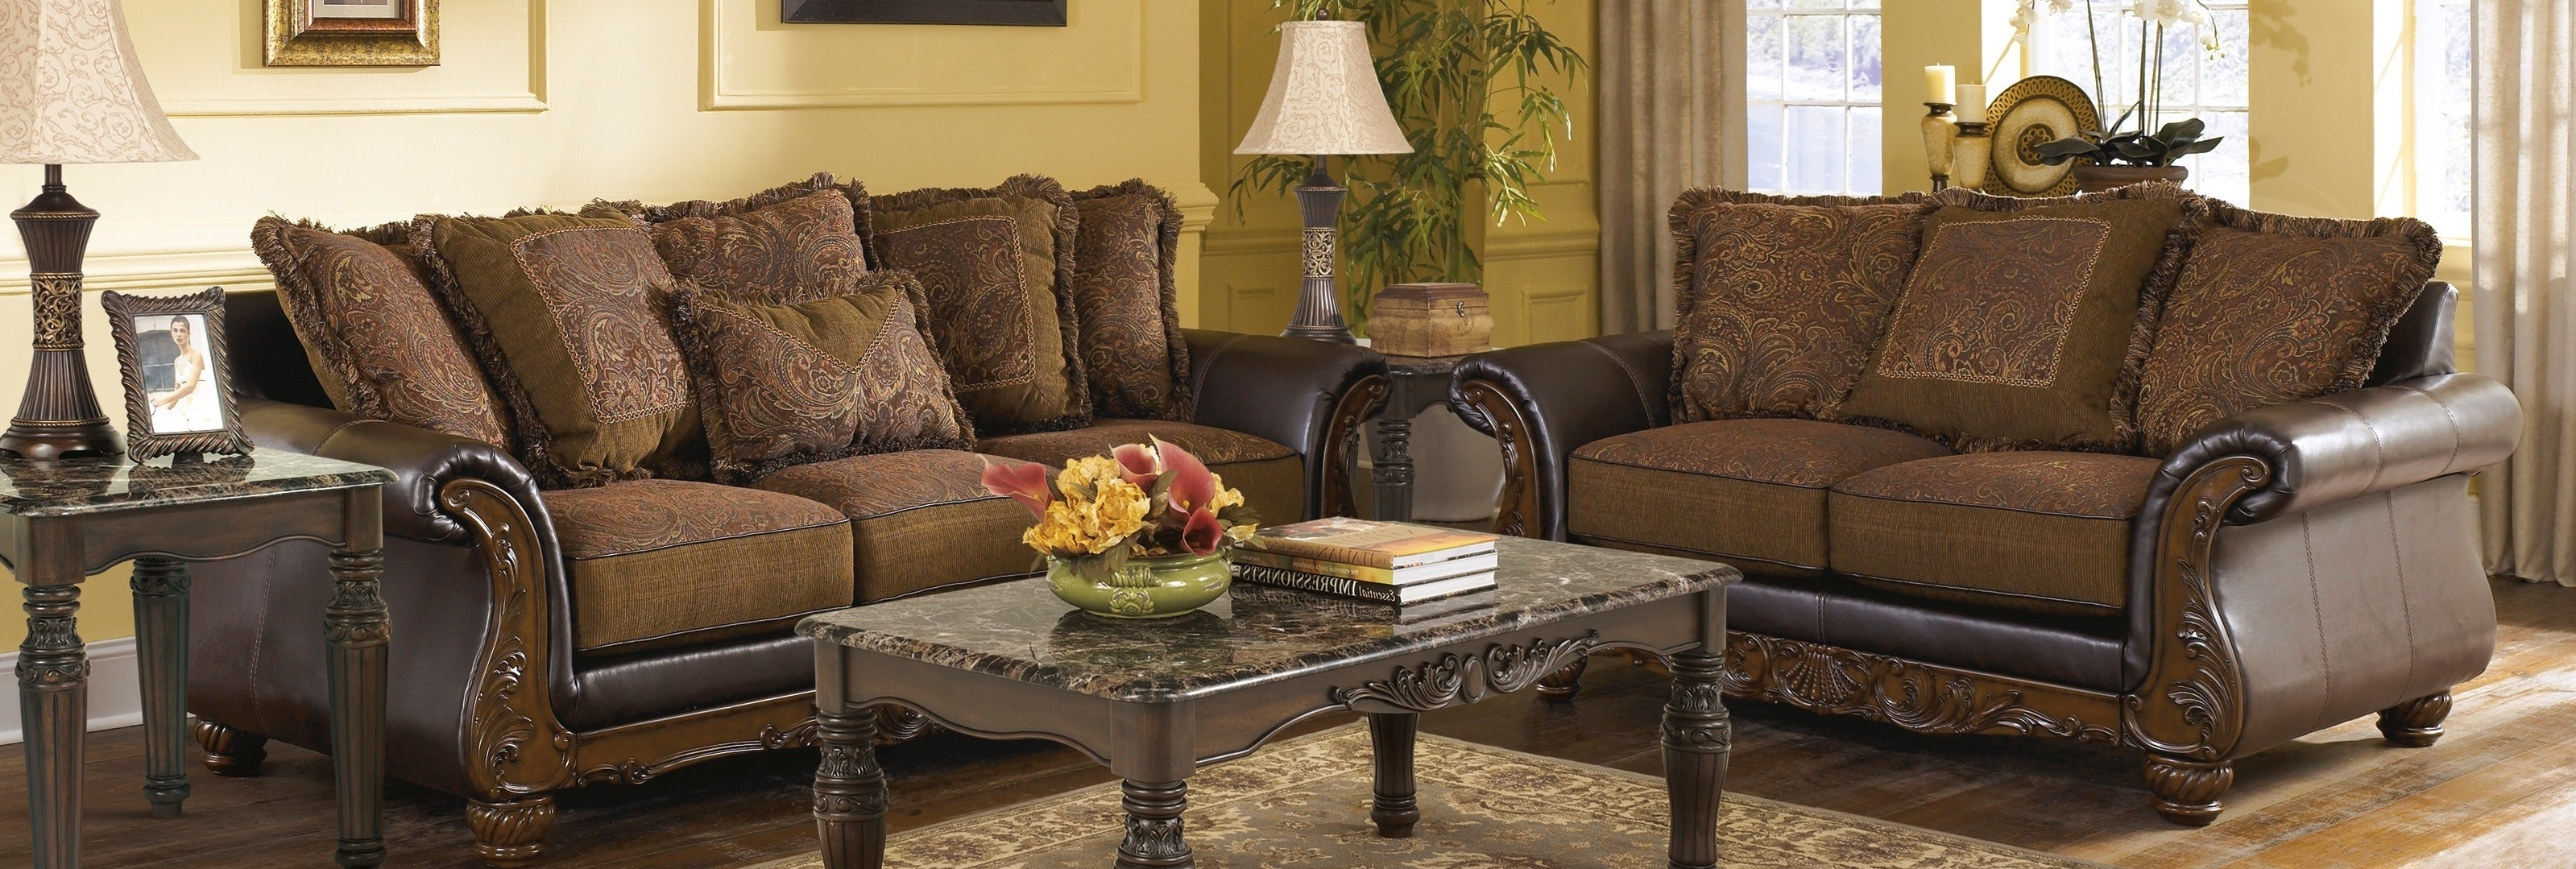 Amazing Idea Aarons Living Room Furniture Ideas Brown Adorable With Regard To 2017 Sectional Sofas At Aarons (View 2 of 15)